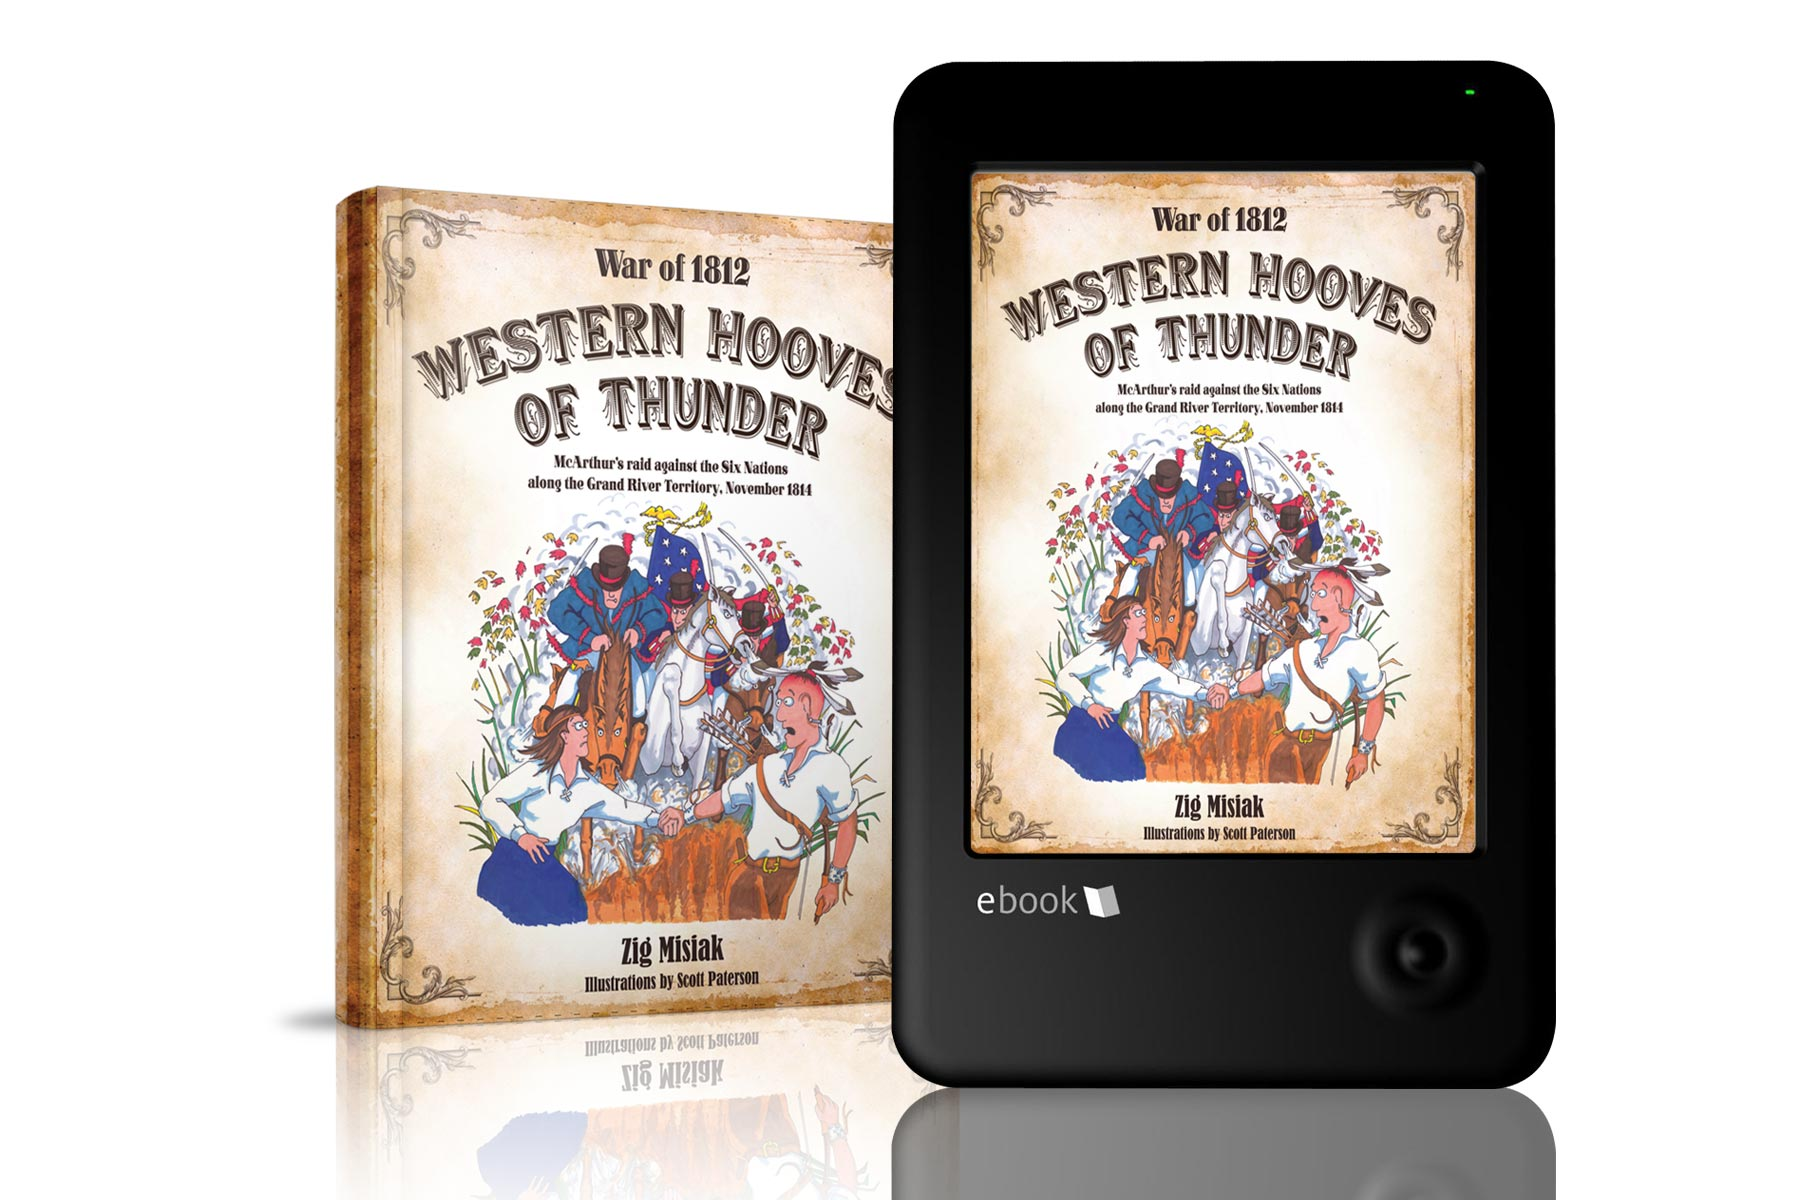 War of 1812 Western Hooves of Thunder